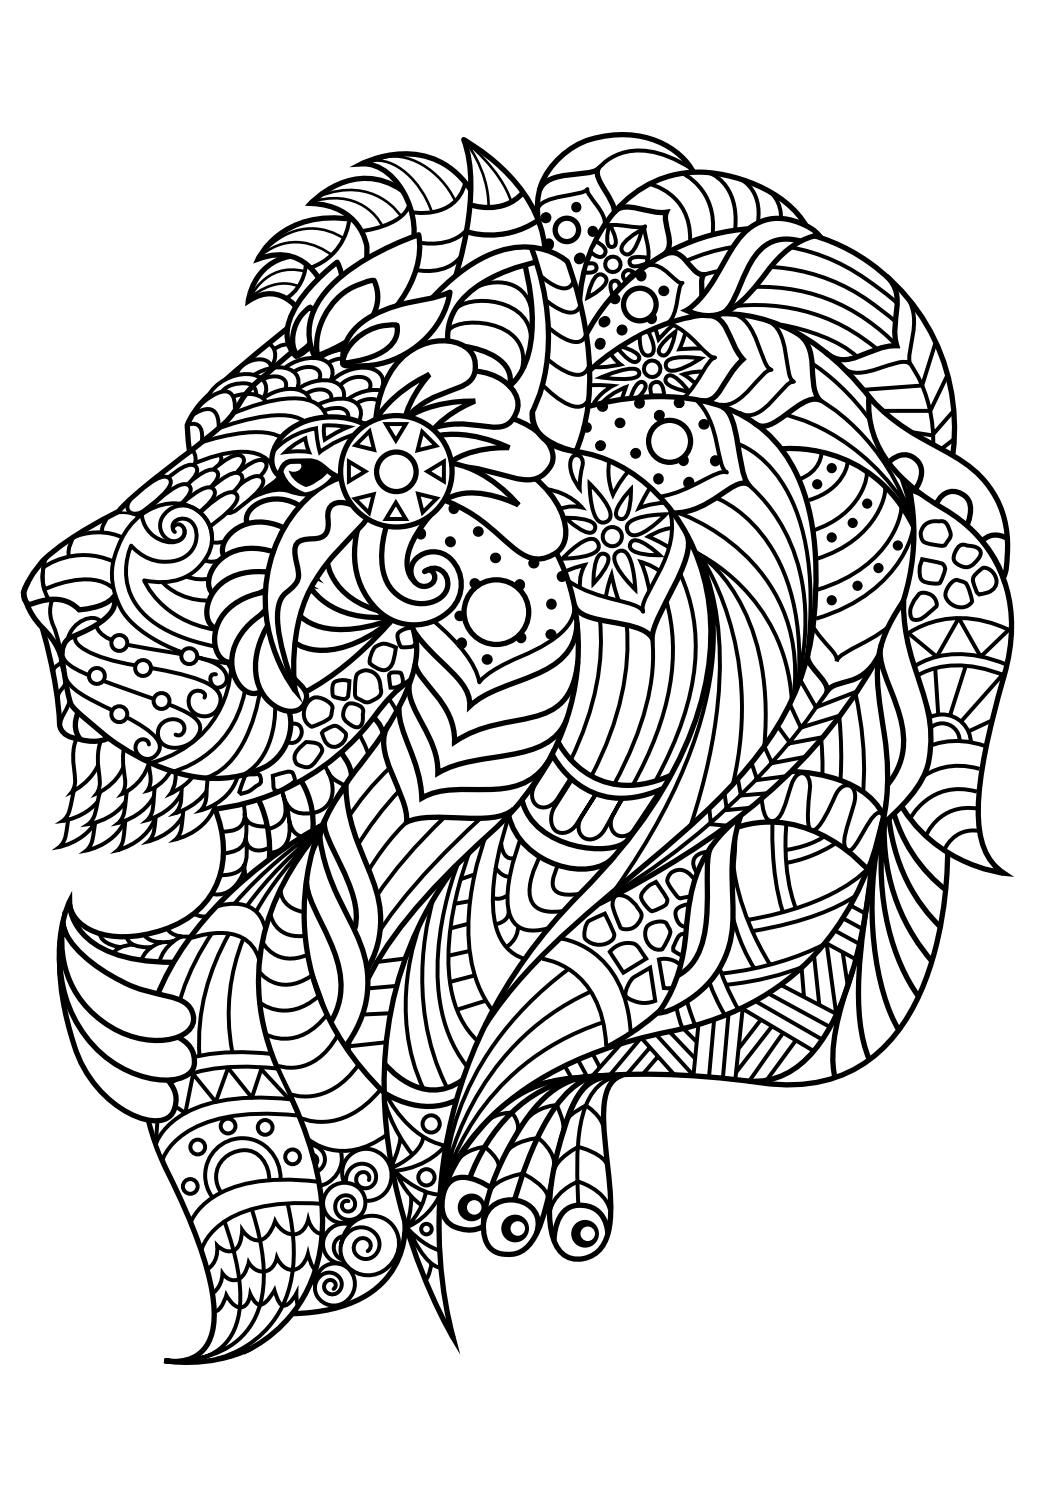 Animal coloring pages pdf | Lion coloring pages, Mandala ... | free printable coloring pages for adults animals